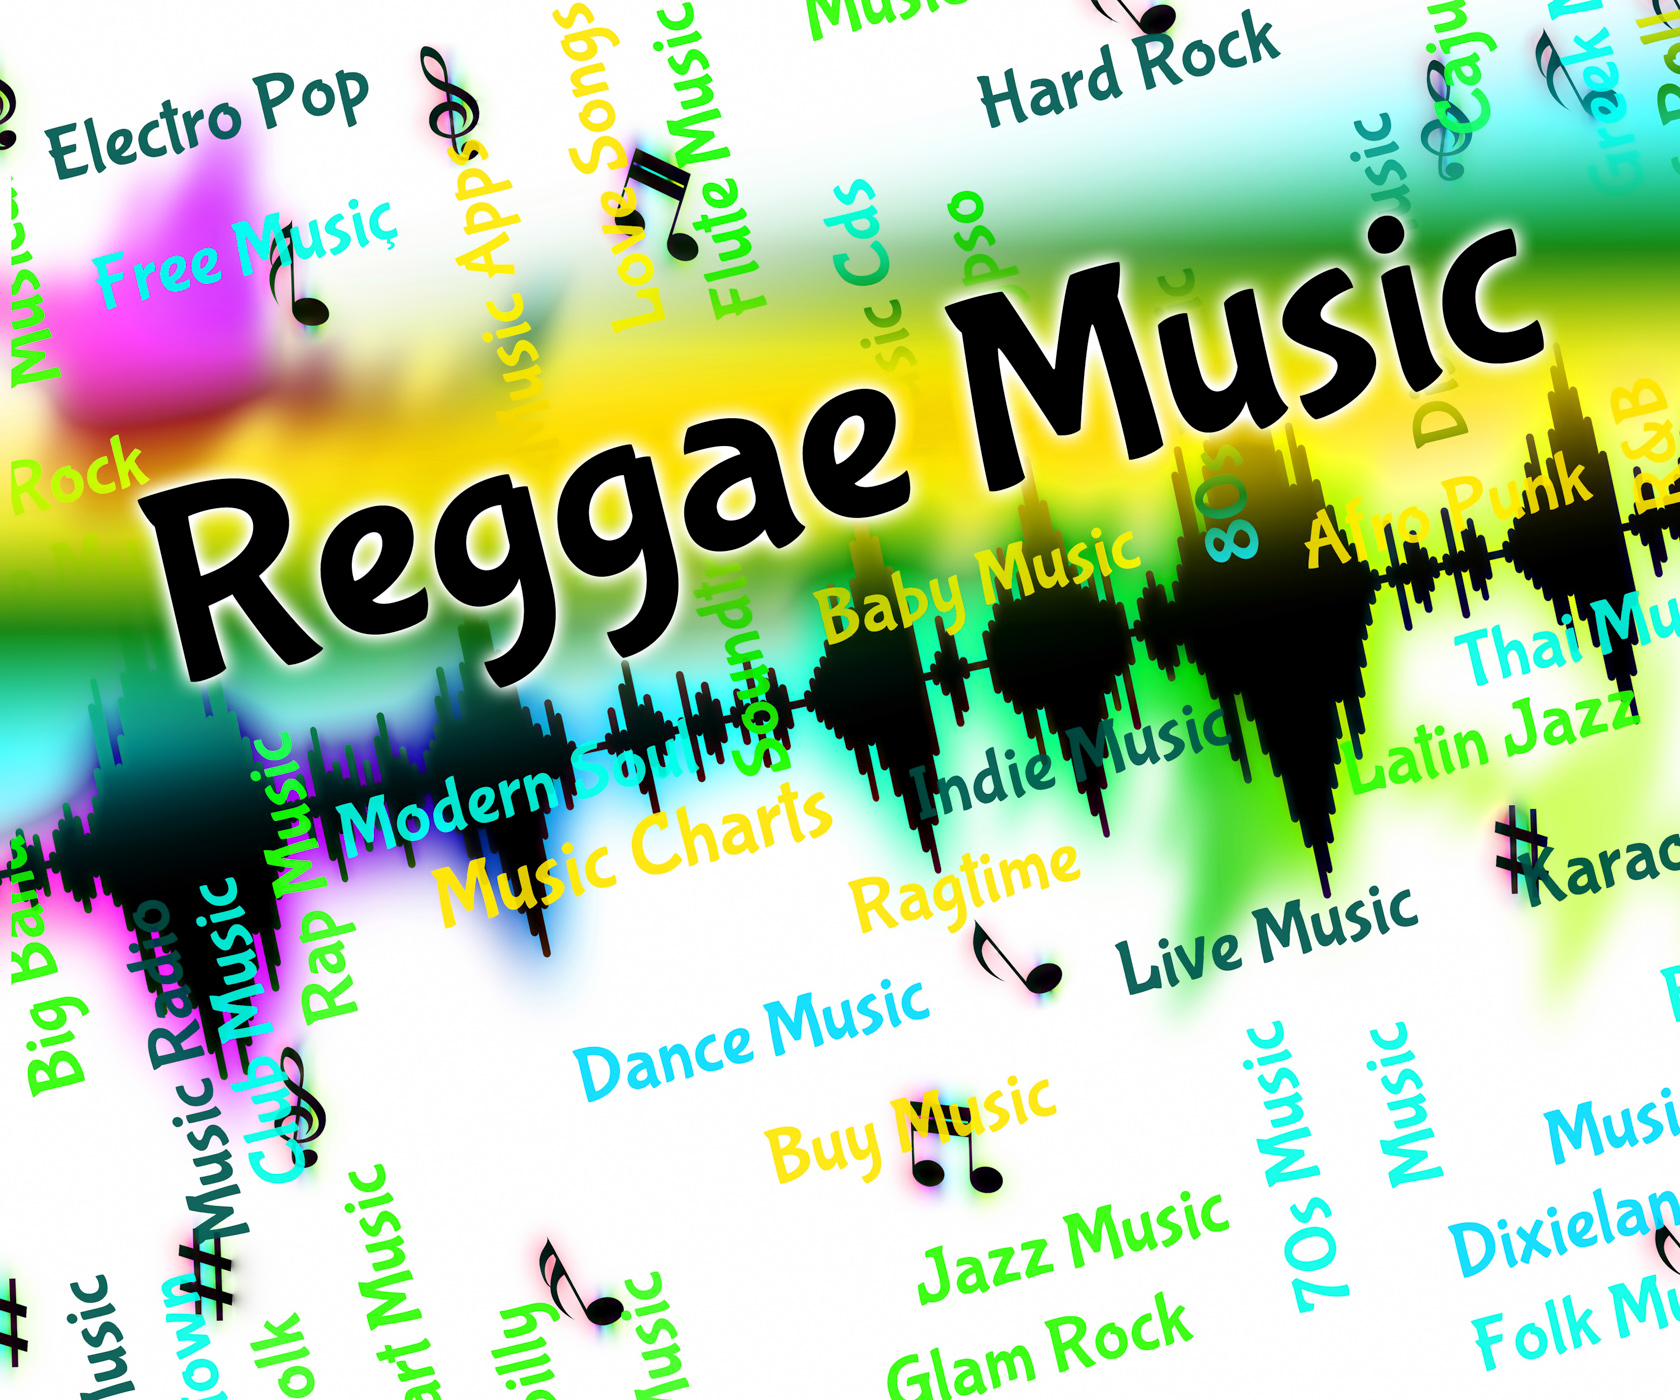 Reggae music means sound tracks and calypso photo